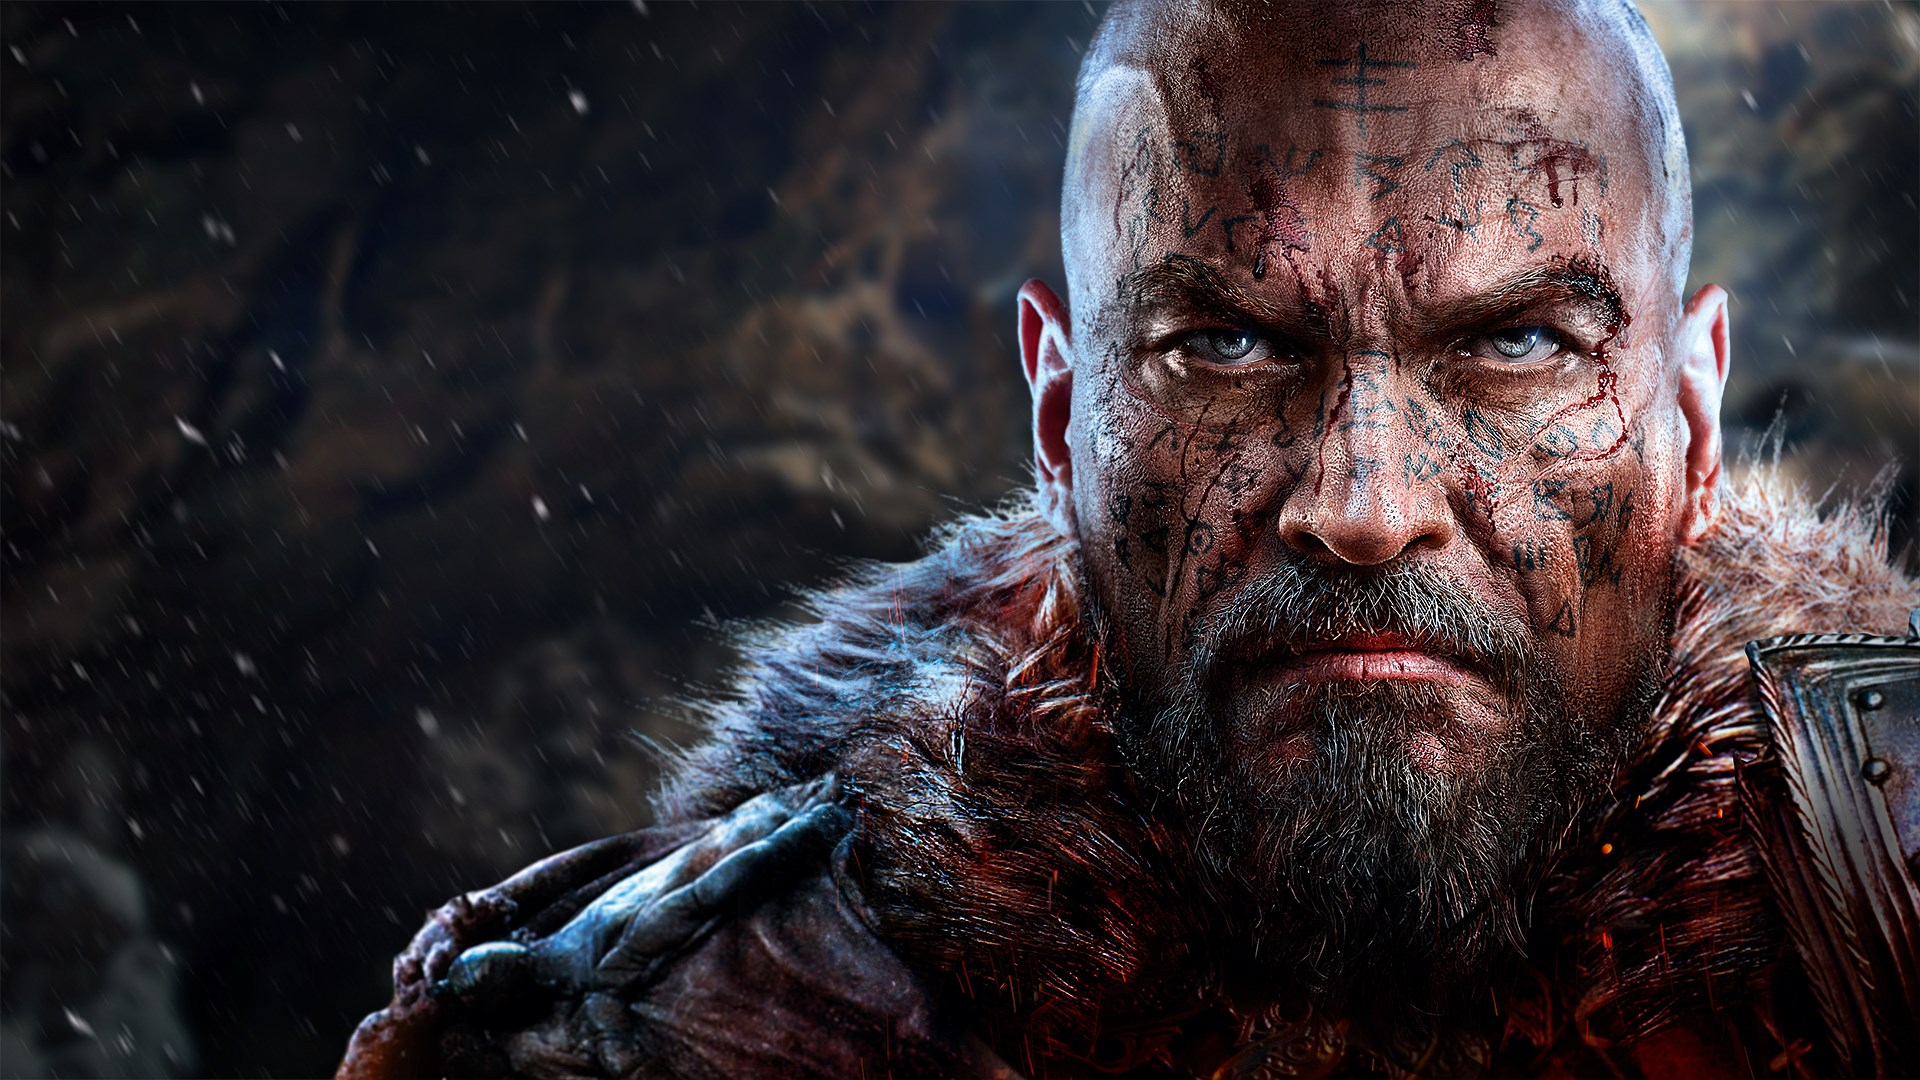 Lords of the fallen complete edition on ps4 | official playstation.